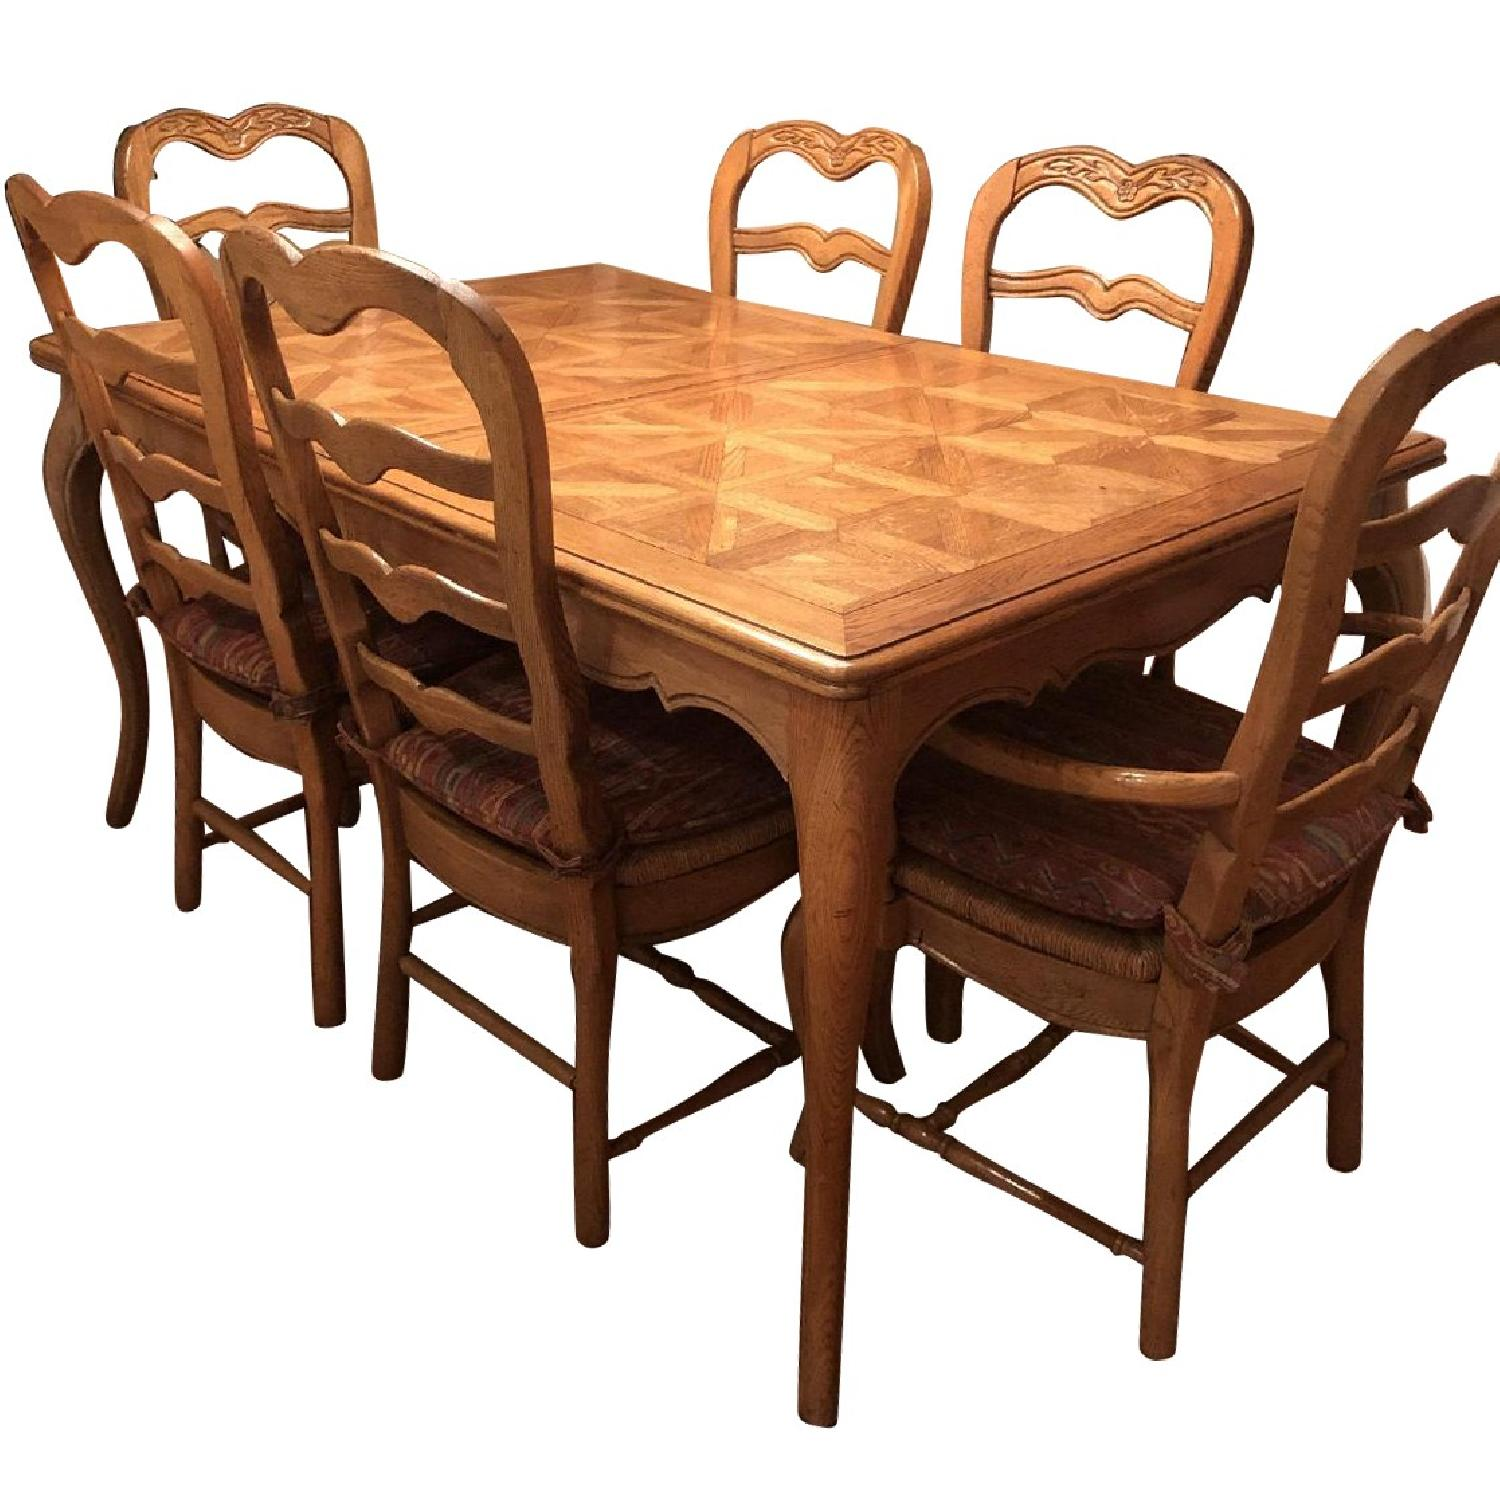 Provence Expandable Dining Table w/ 8 Chairs - image-0